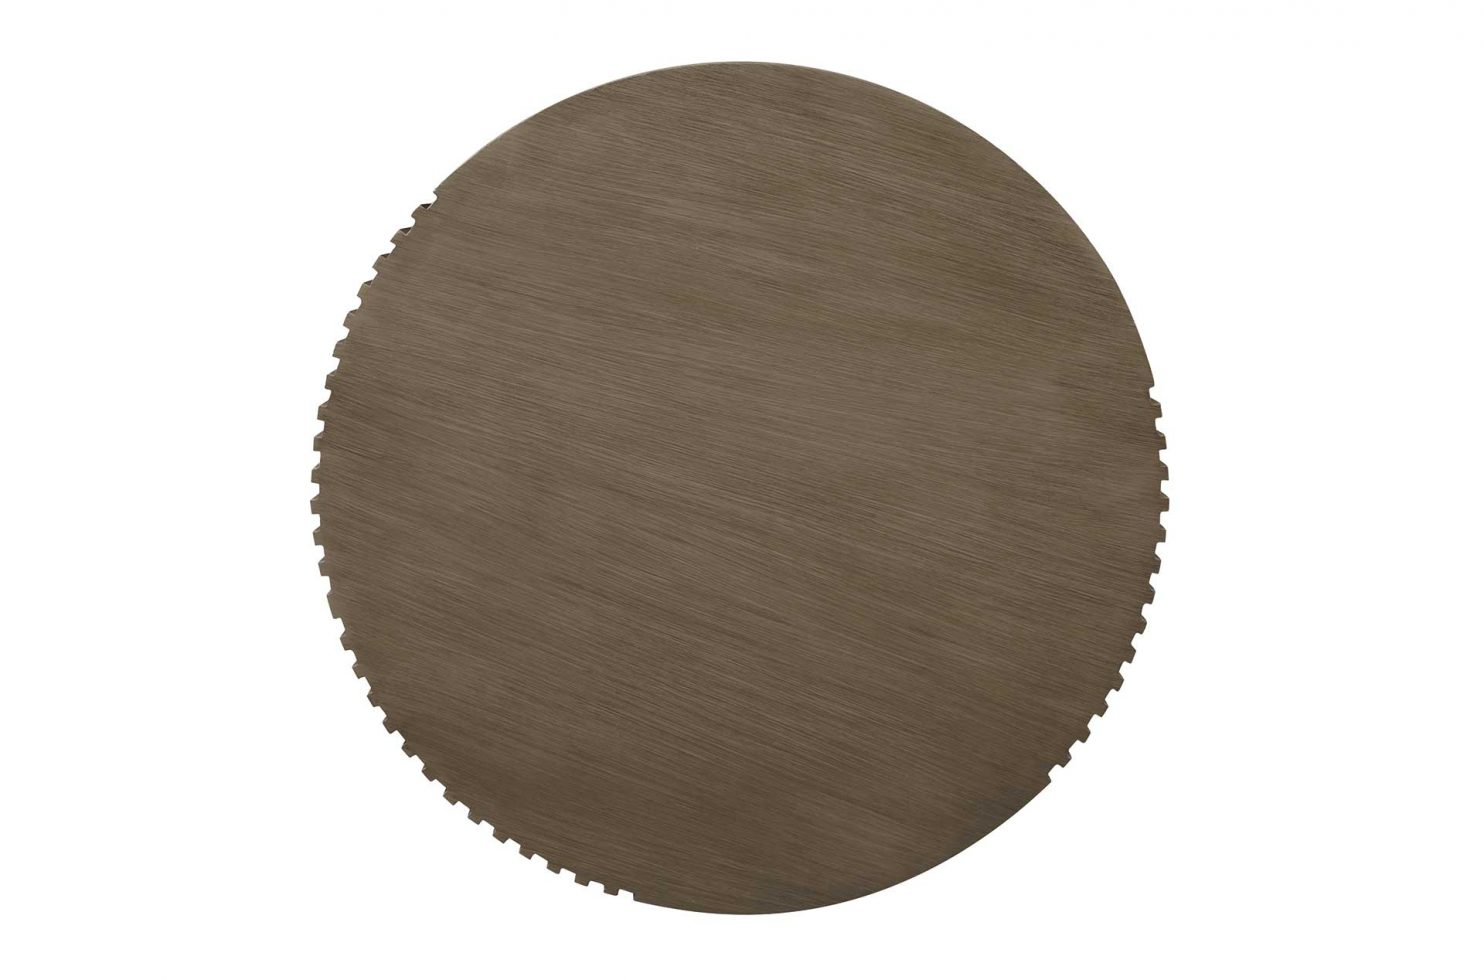 prov frp serenity energy textured round table S1568804146 top web